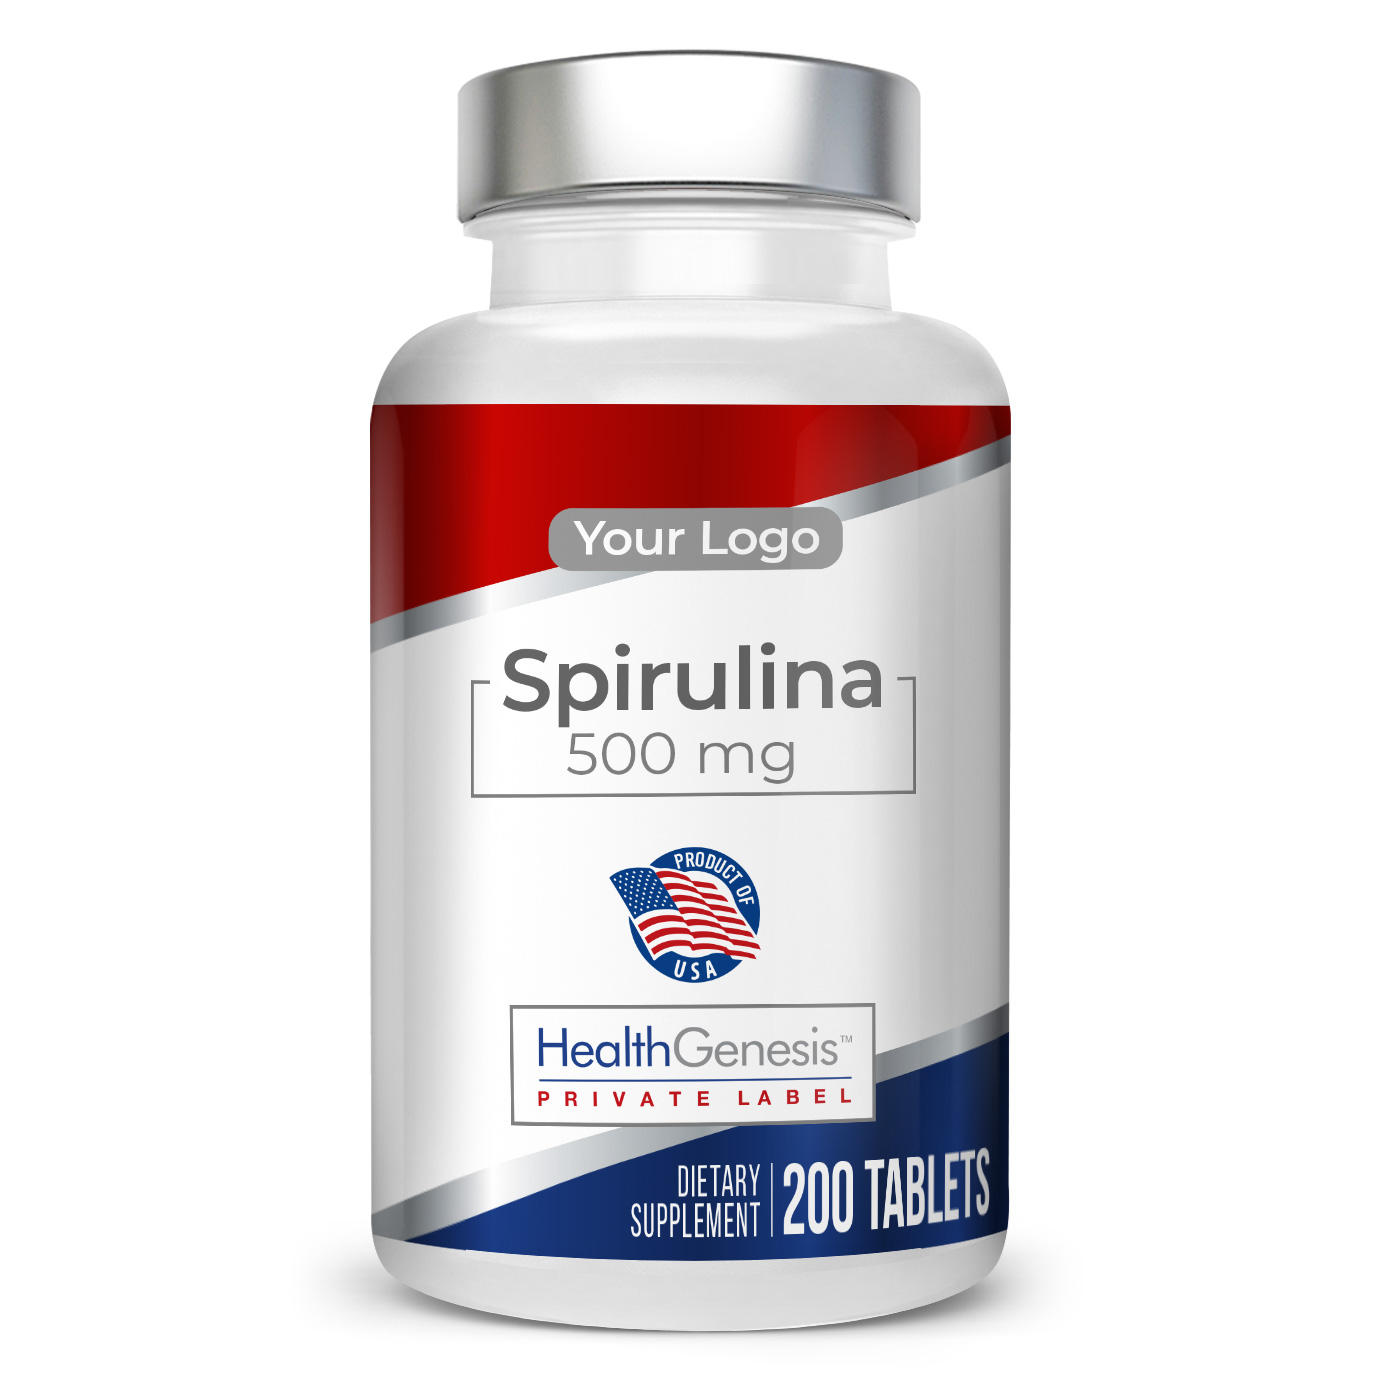 Private Label Spirulina 500 mg 200 Certified Organic Tablets Highest Quality All Natural Supplement Healthy Immune Energy Boost